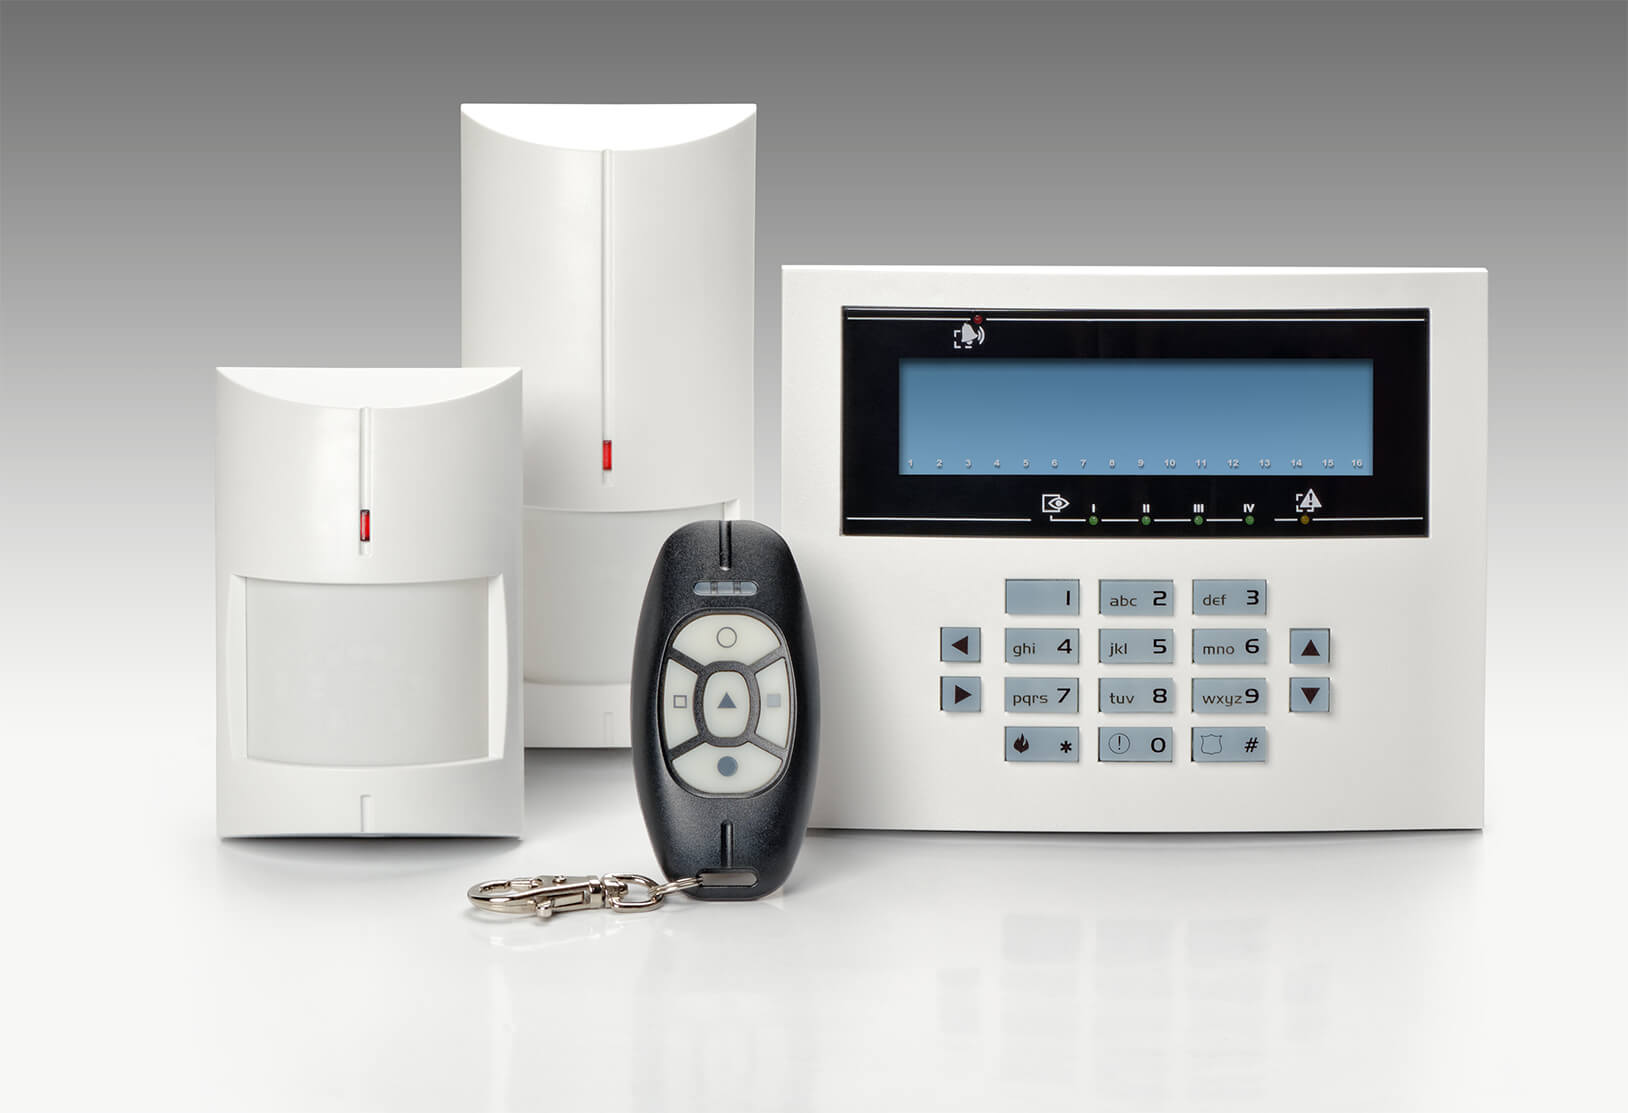 Business & Residential NACOSS Approved Burglar Alarms In Rotherhithe SE16 - Local Rotherhithe SE16 security company.Call 02078872244 - Dedicated to Safety & Security. Companies, shops and homes ..